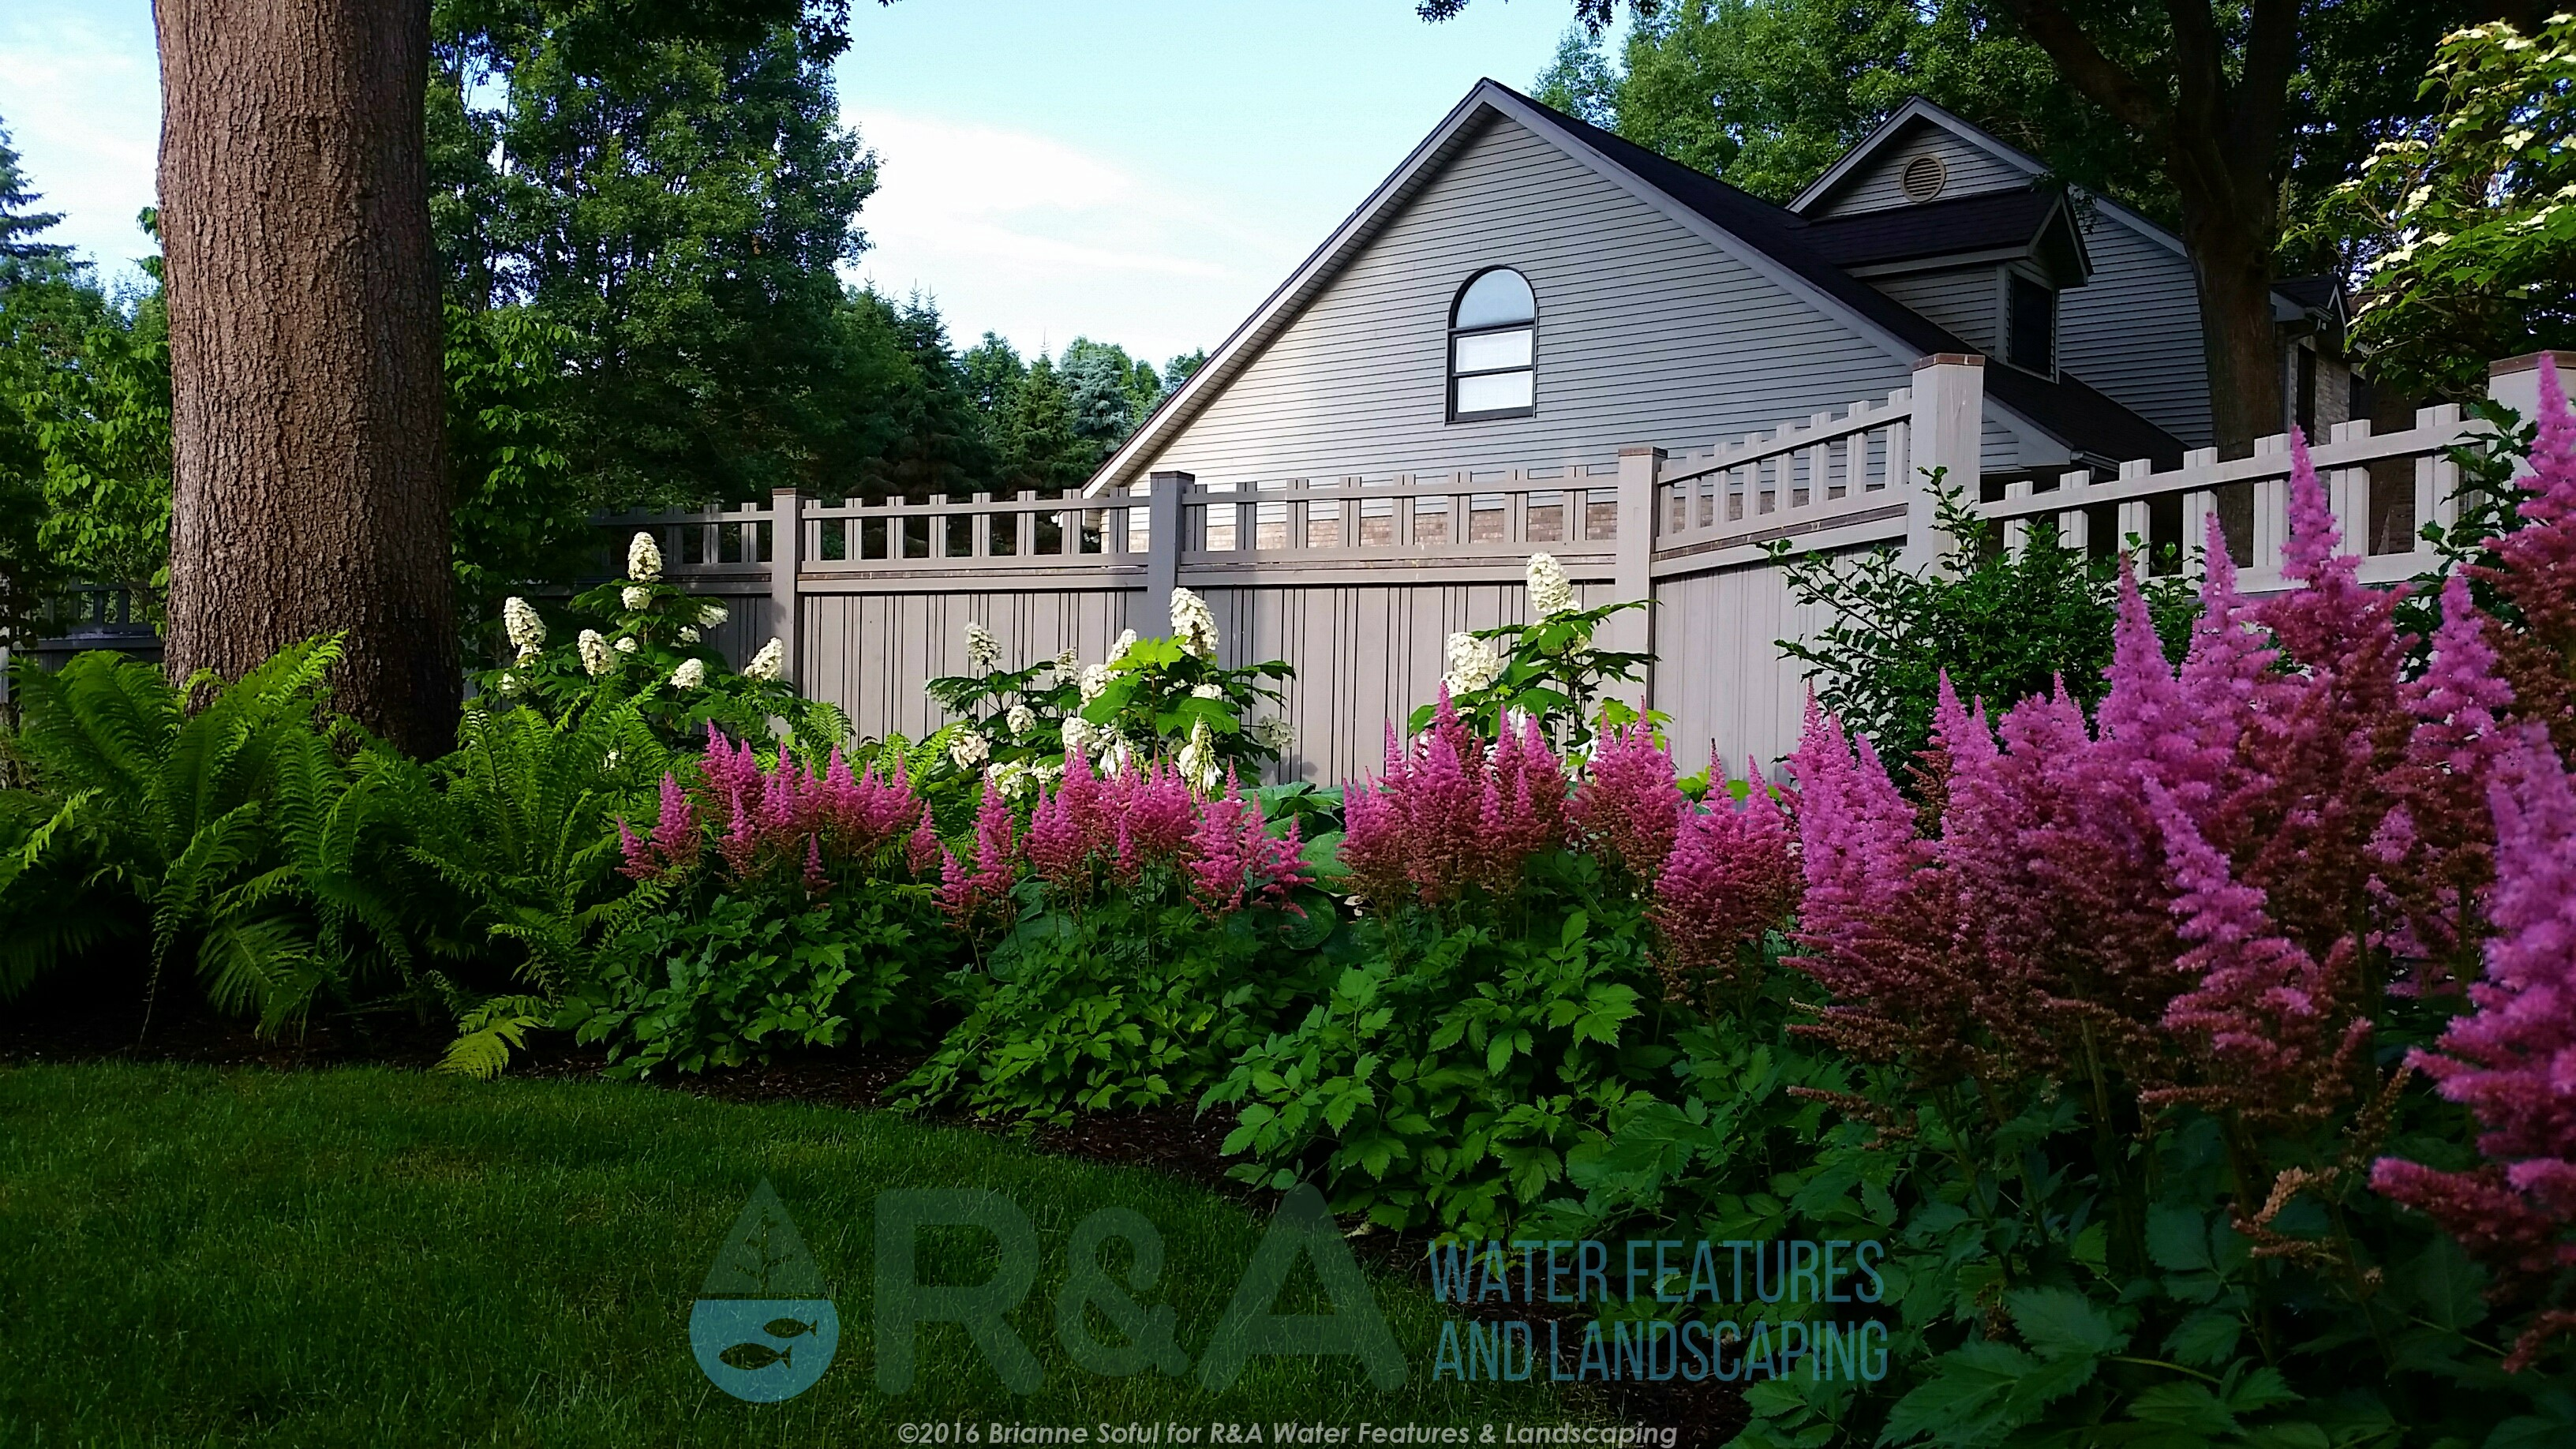 Texas Township Estate Renovation Landscape Water Feature Patio Grass In Shade Garden